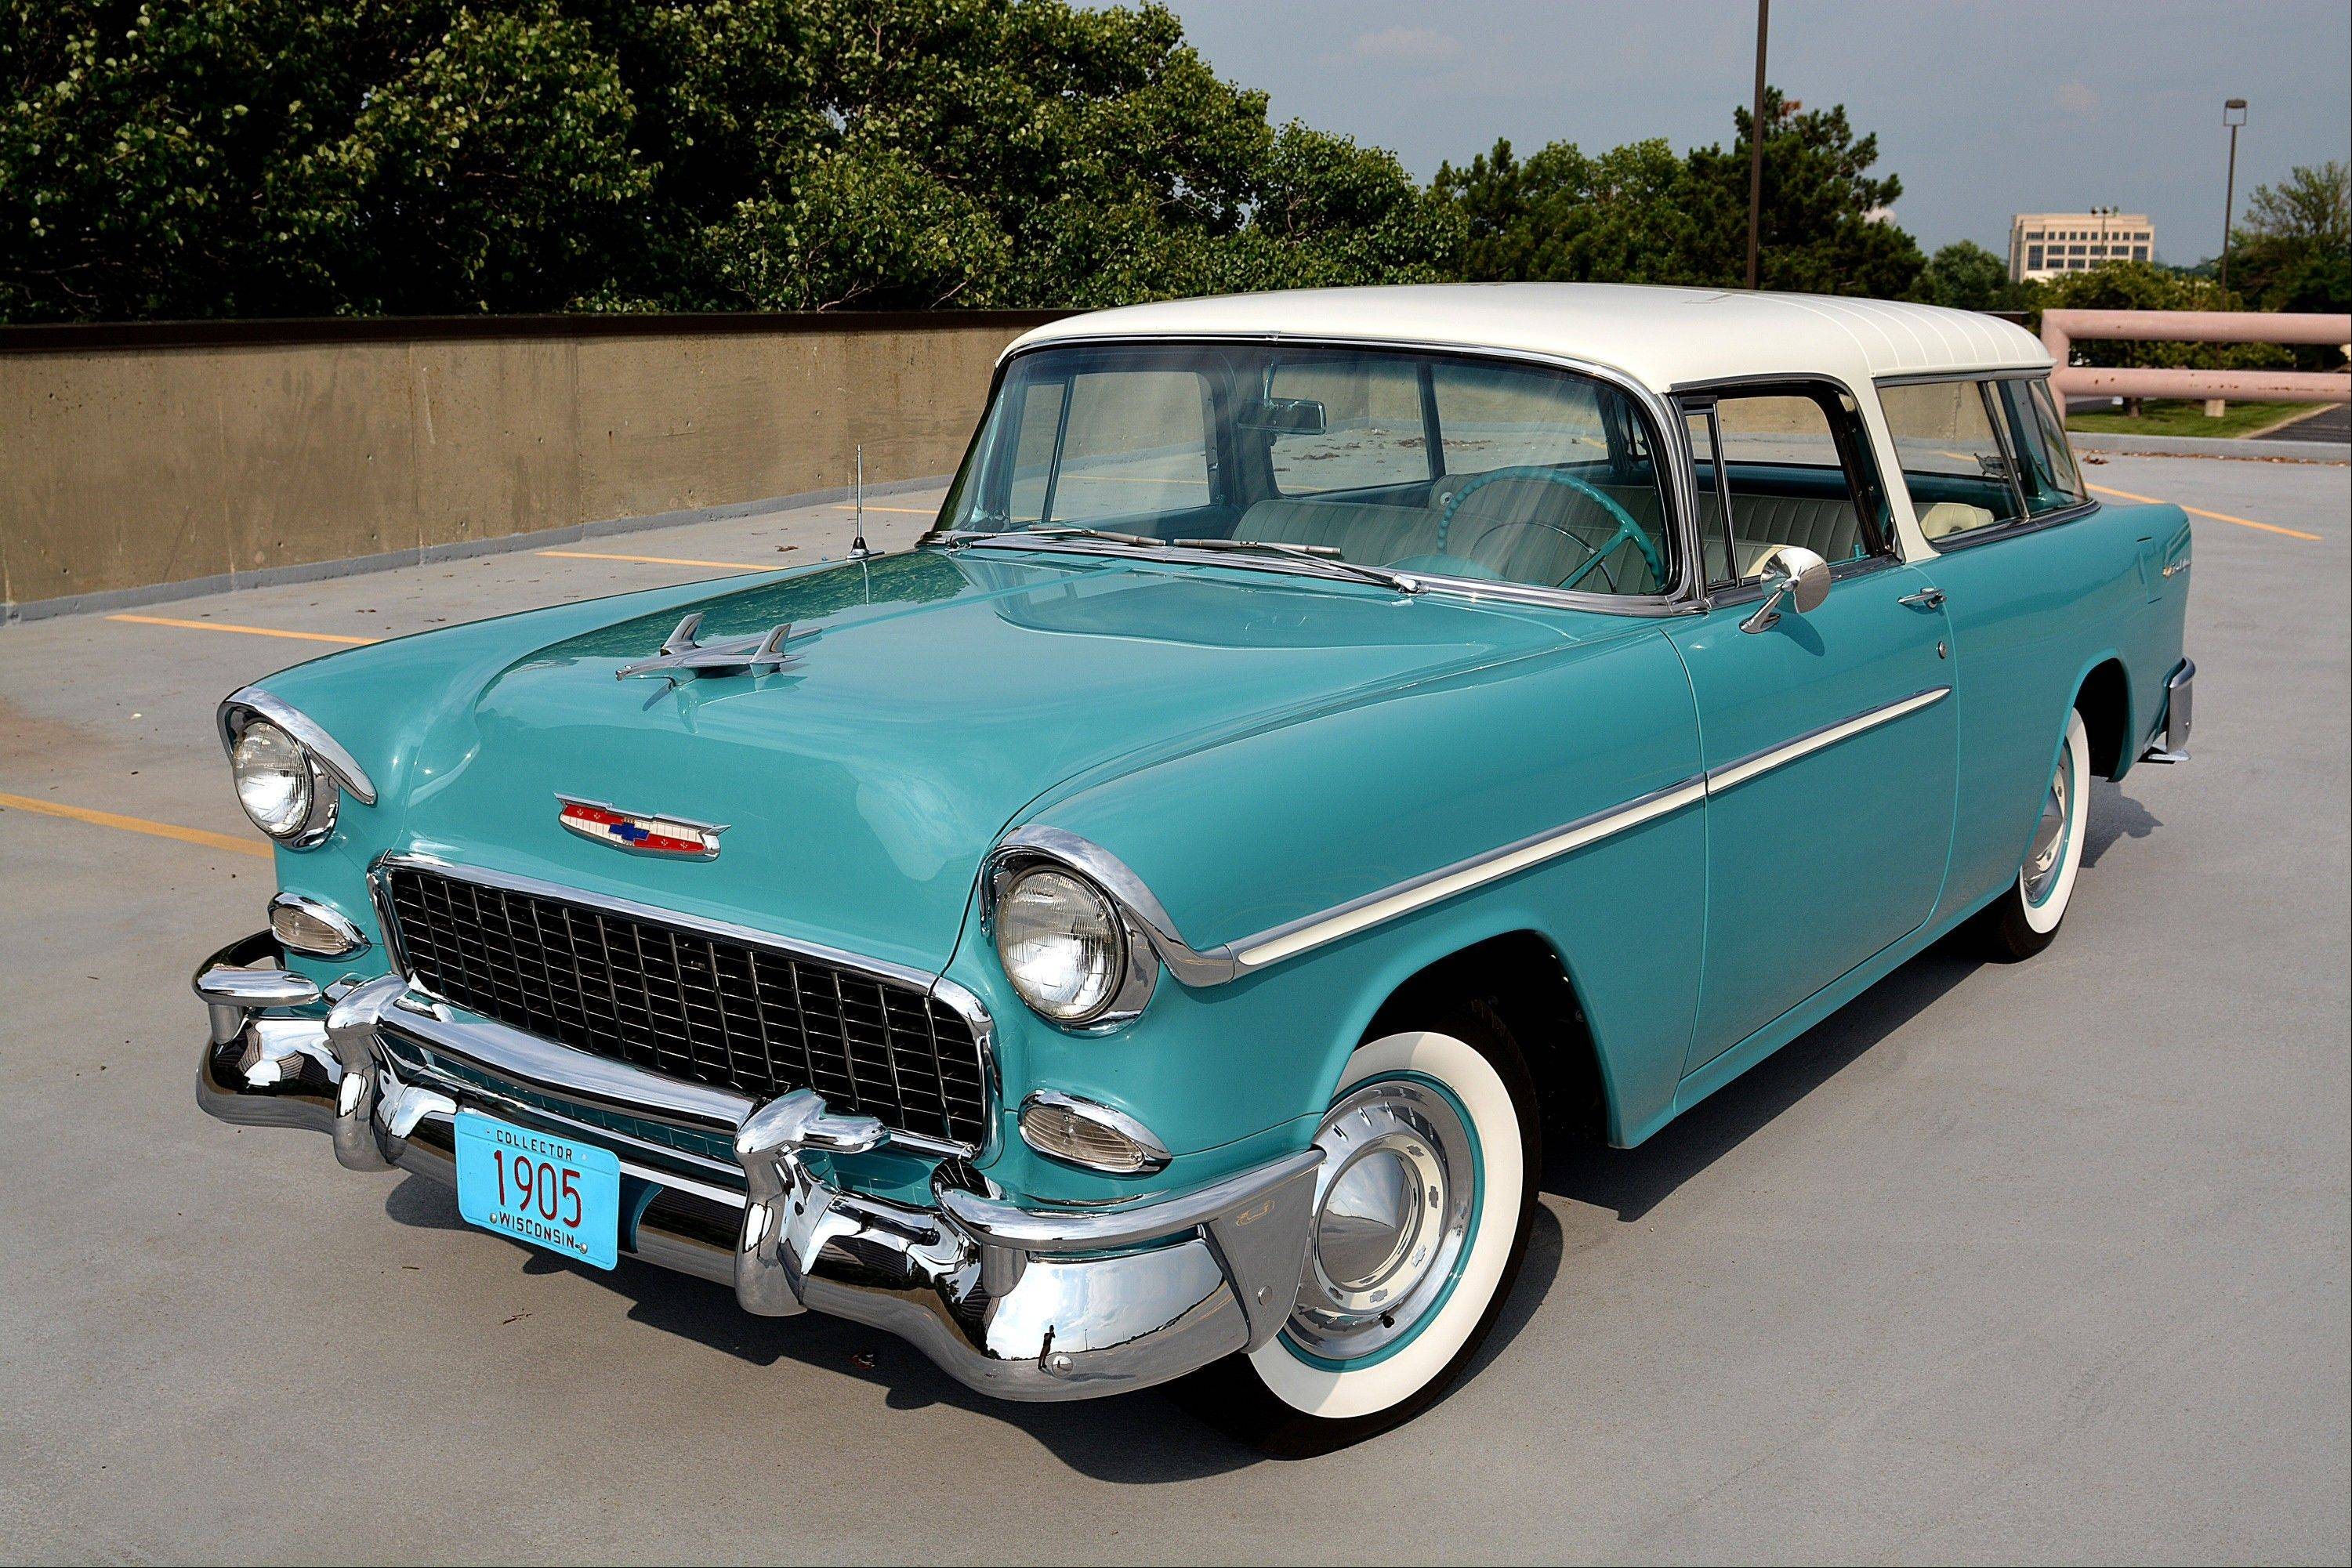 A 10-month overhaul of this 1955 Chevrolet Nomad was complete in 2011.